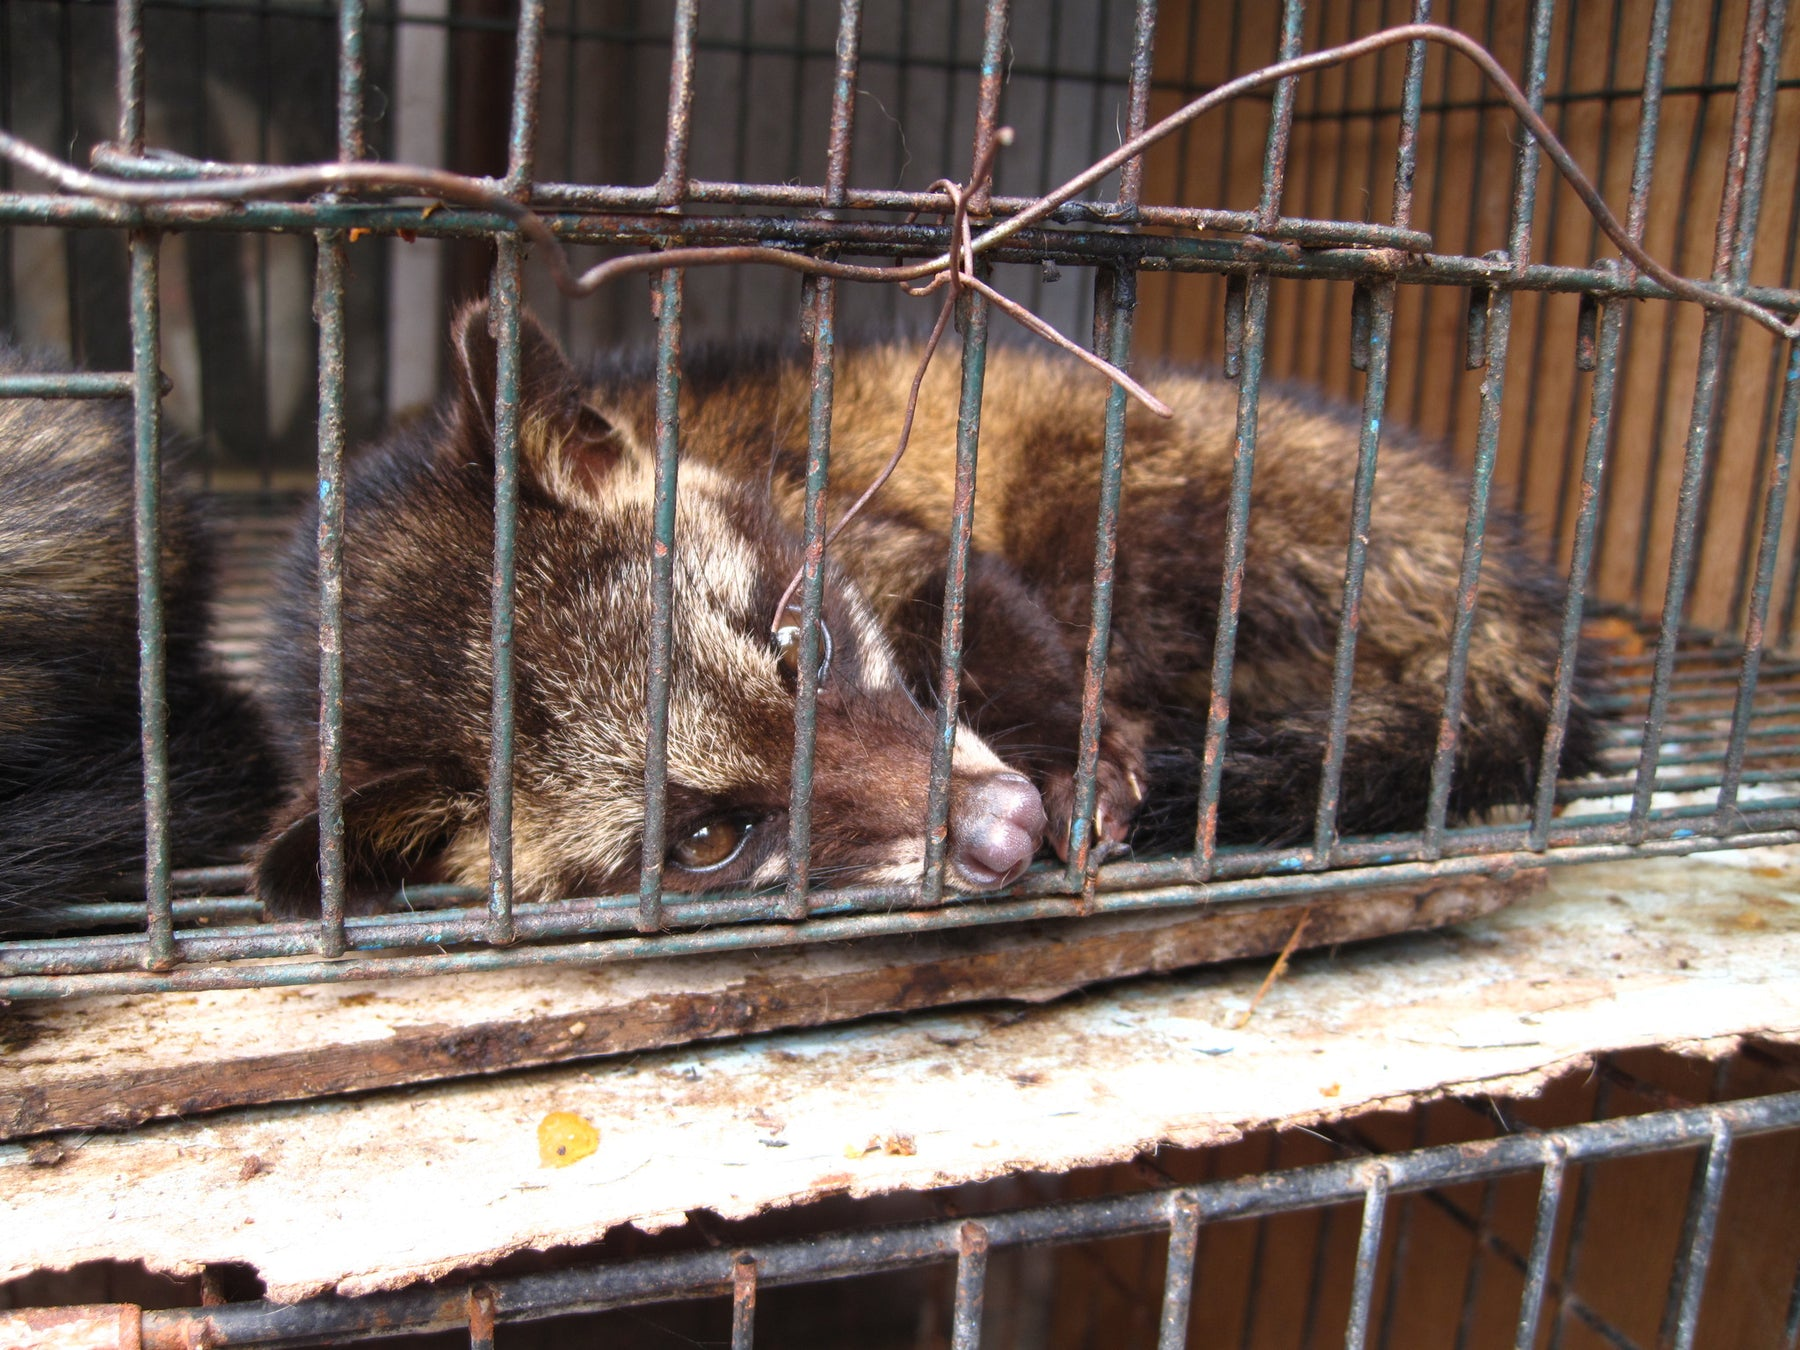 Civet Cat Abuse and the Production of Kopi Luwak, the World's Most Expensive Coffee